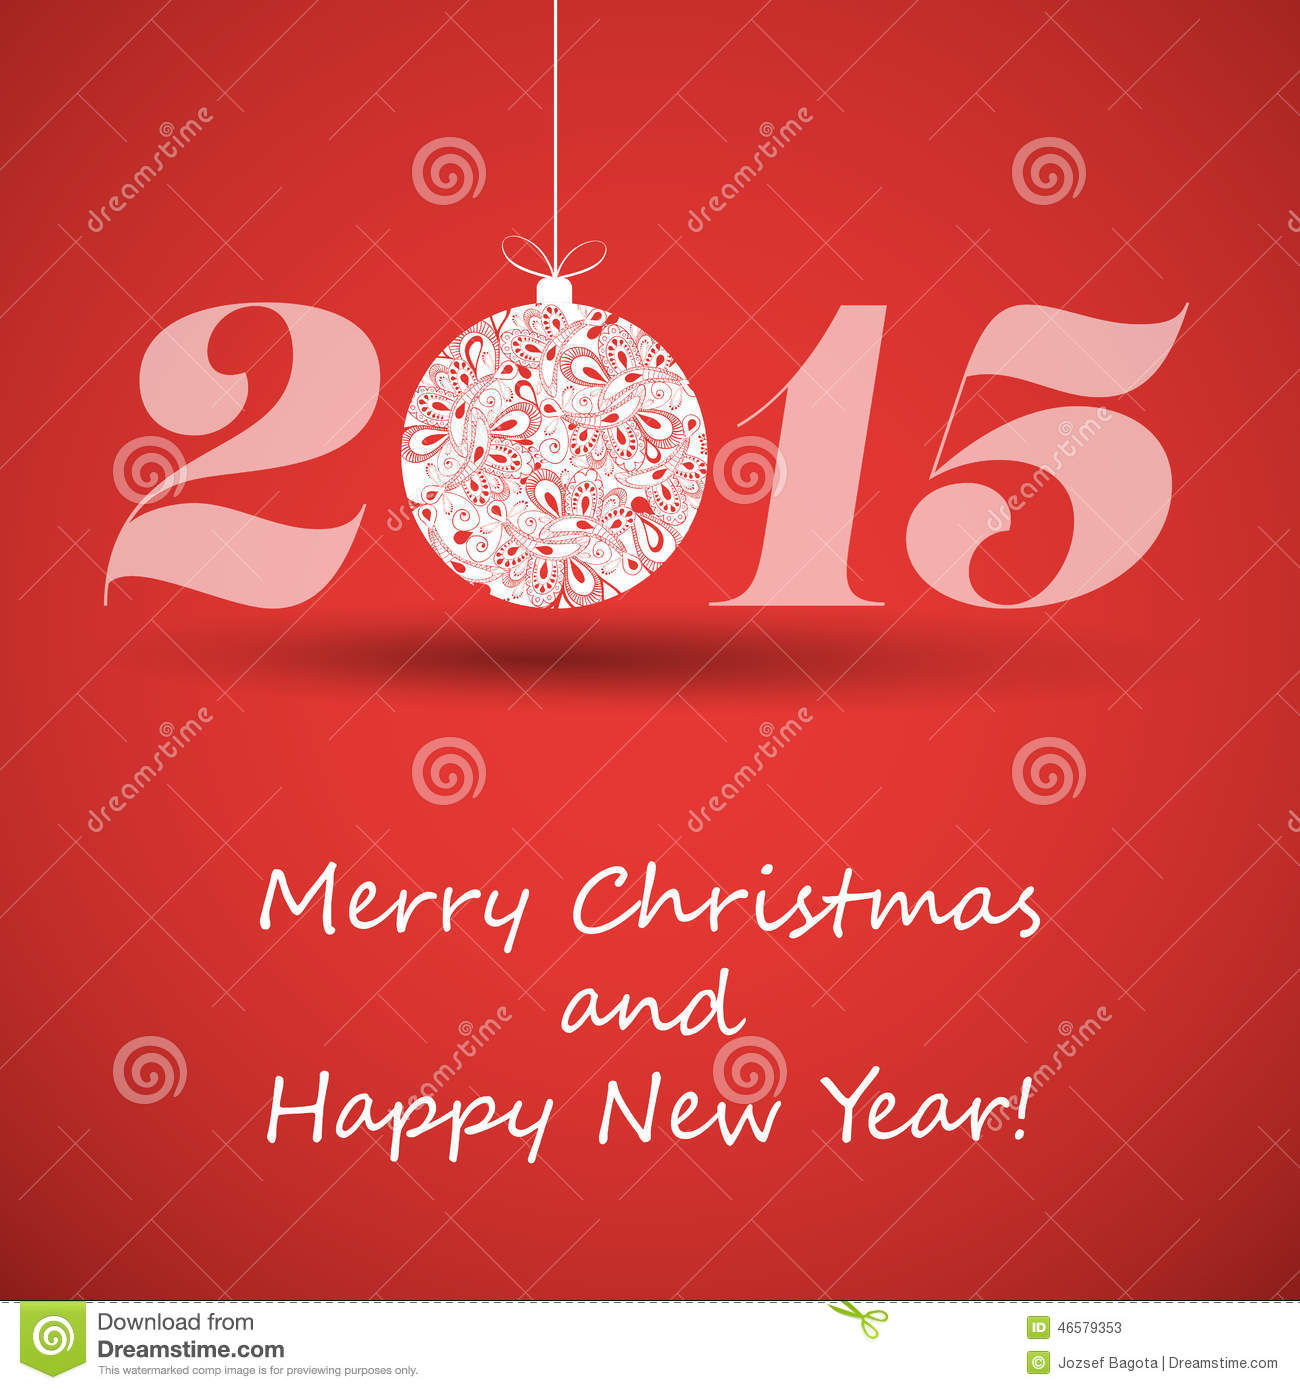 Merry Christmas And Happy New Year Greeting Card 2015 Stock Vector